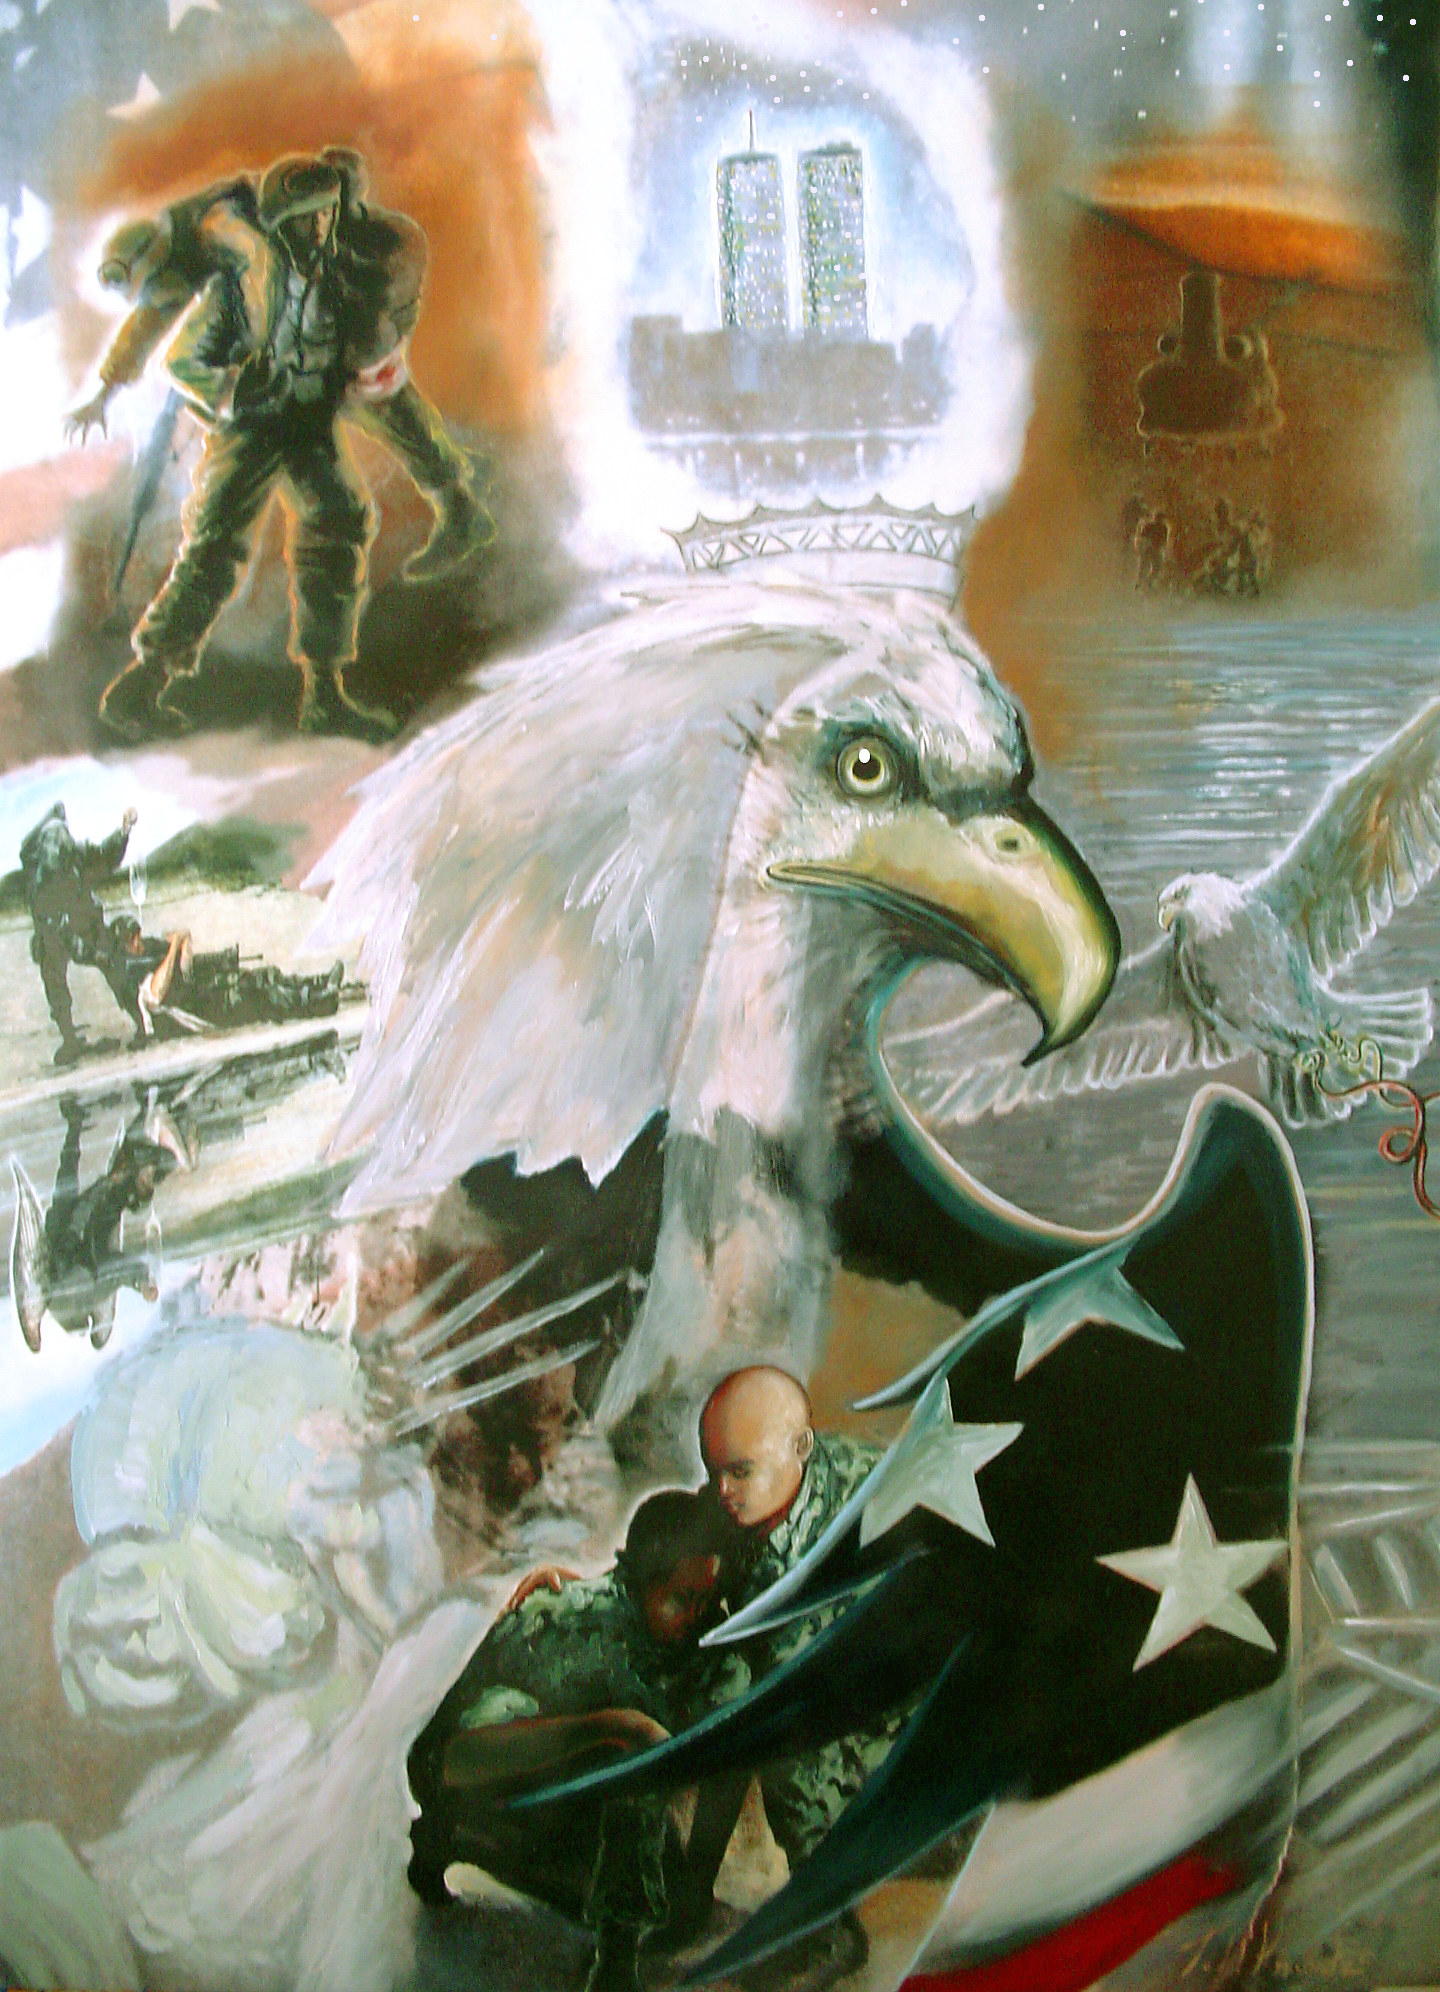 Official Military Art Gallery Showing Amazing Military Prints Posters and Paintings for The Navy, Army, Air Force and Marine Corps